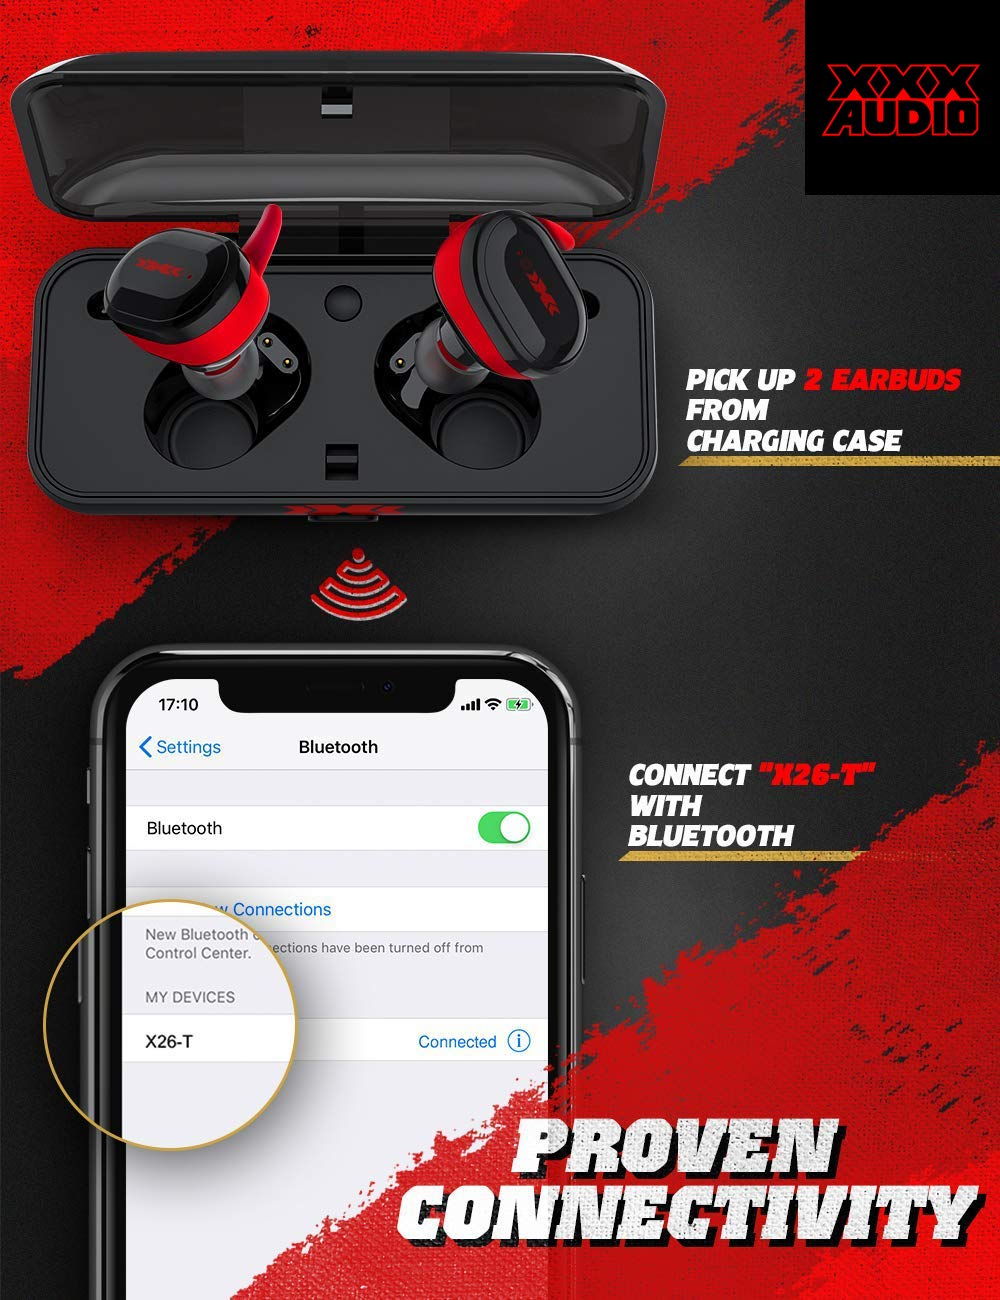 xxx-audio-true-wireless-in-ear-bluetooth-earbuds-app-conneciton